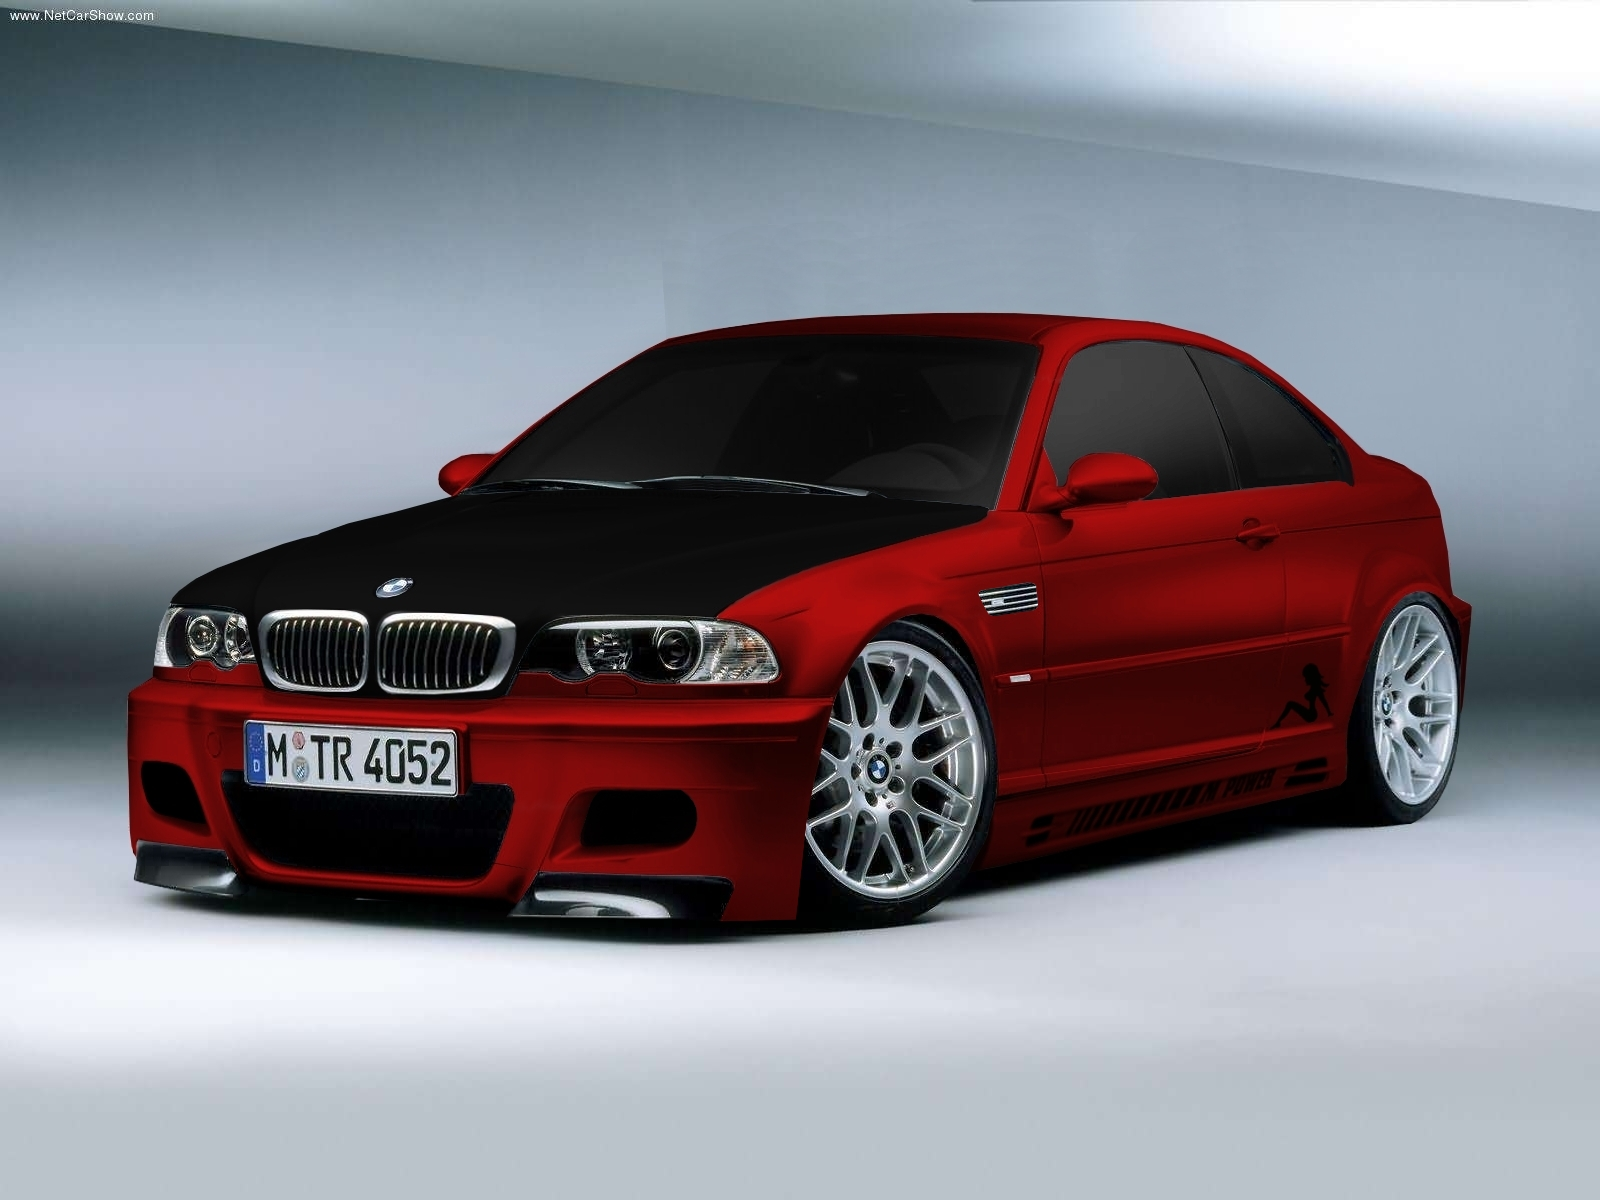 e46 m3 wallpaper - wallpapersafari